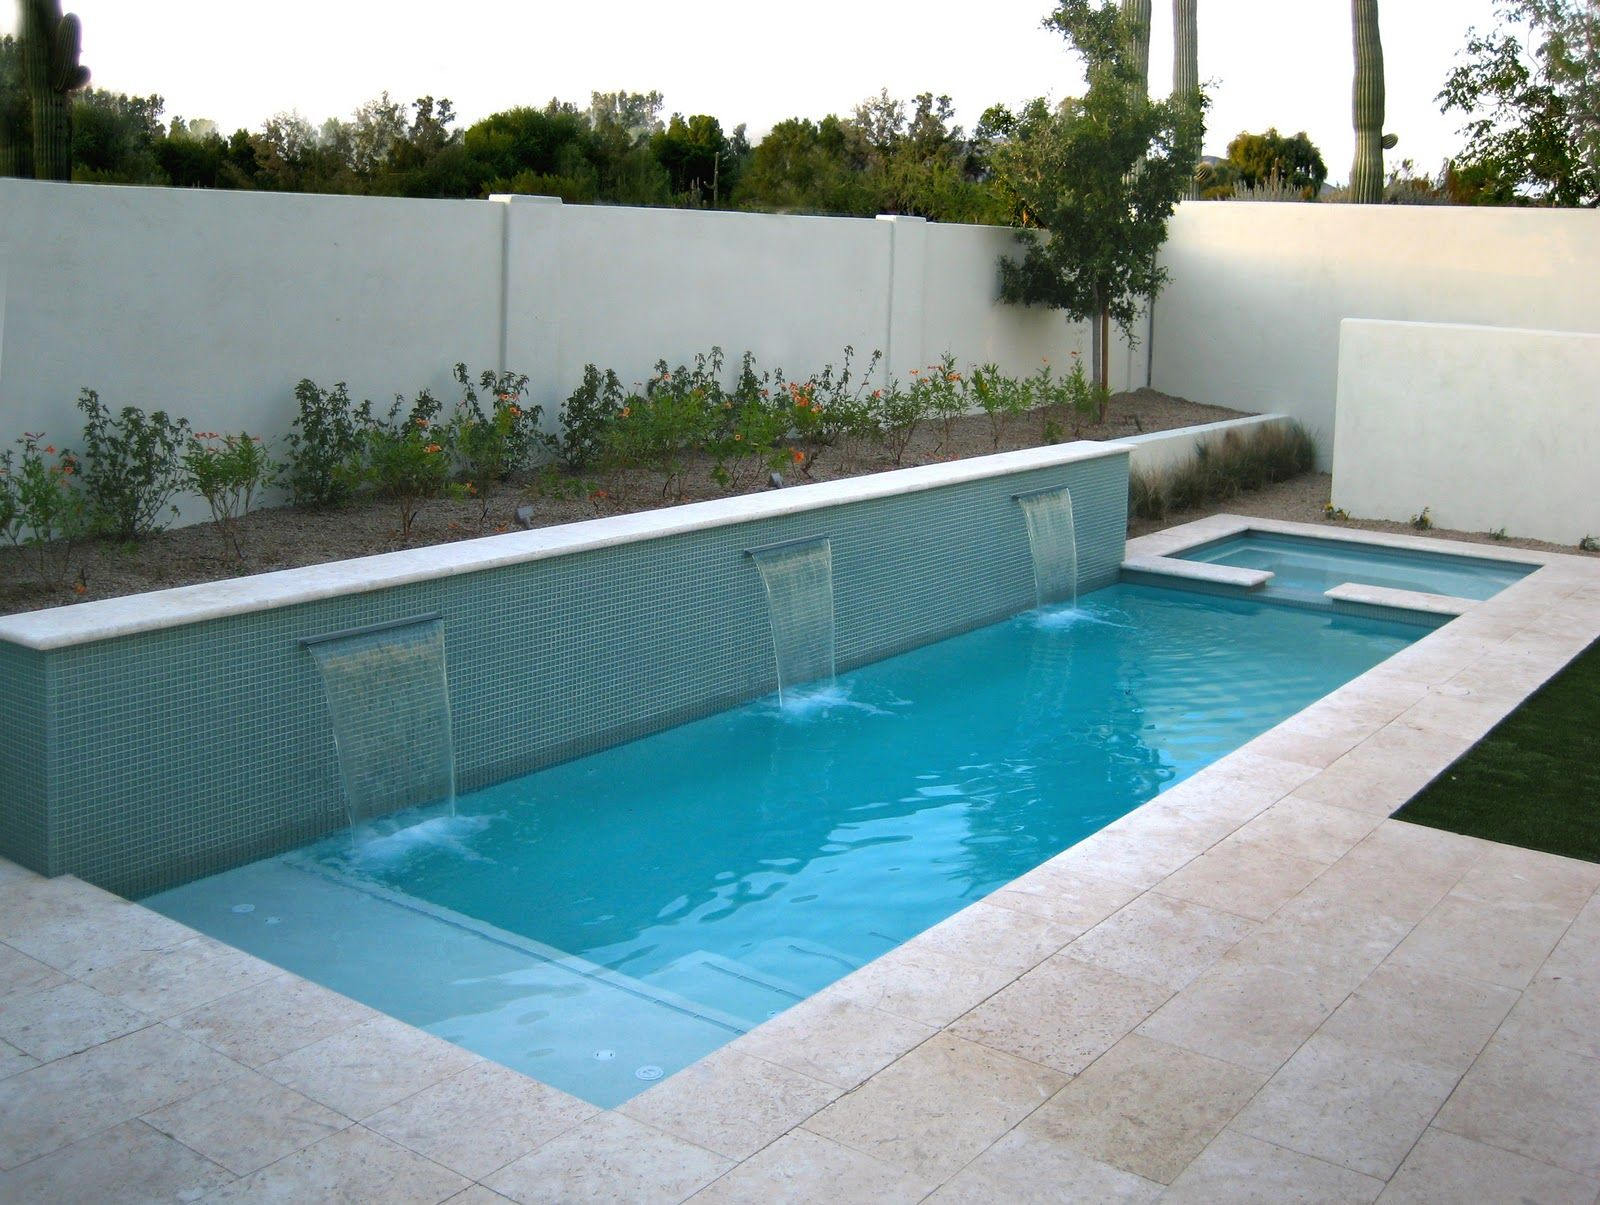 Kidney Shaped Inground Swimming Pool Designs For Large Space ...